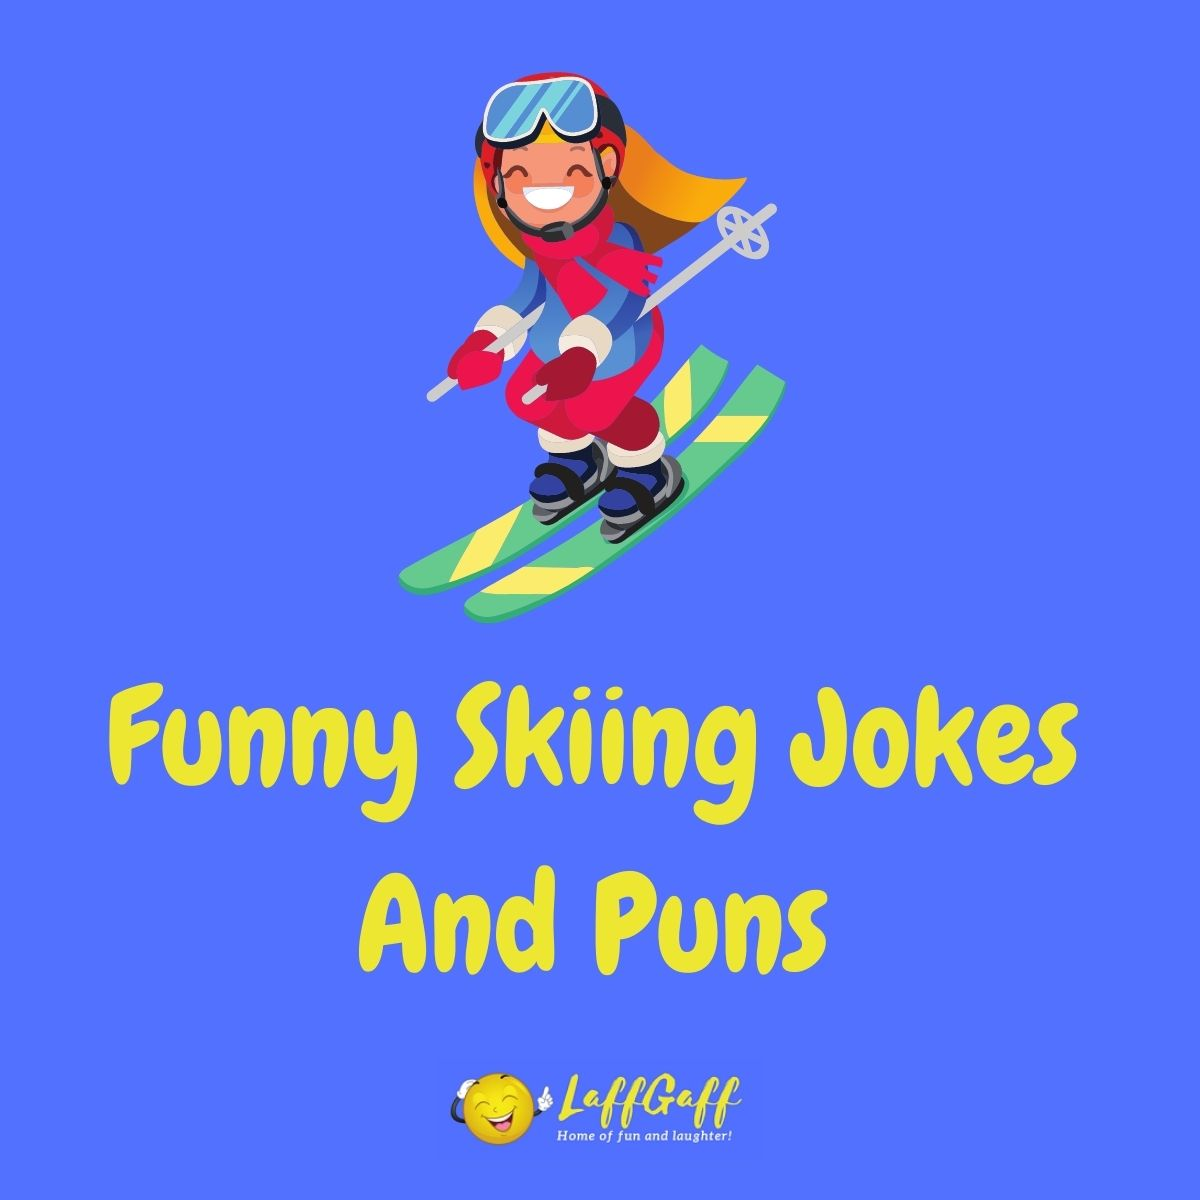 Featured image for a page of funny skiing jokes and puns.